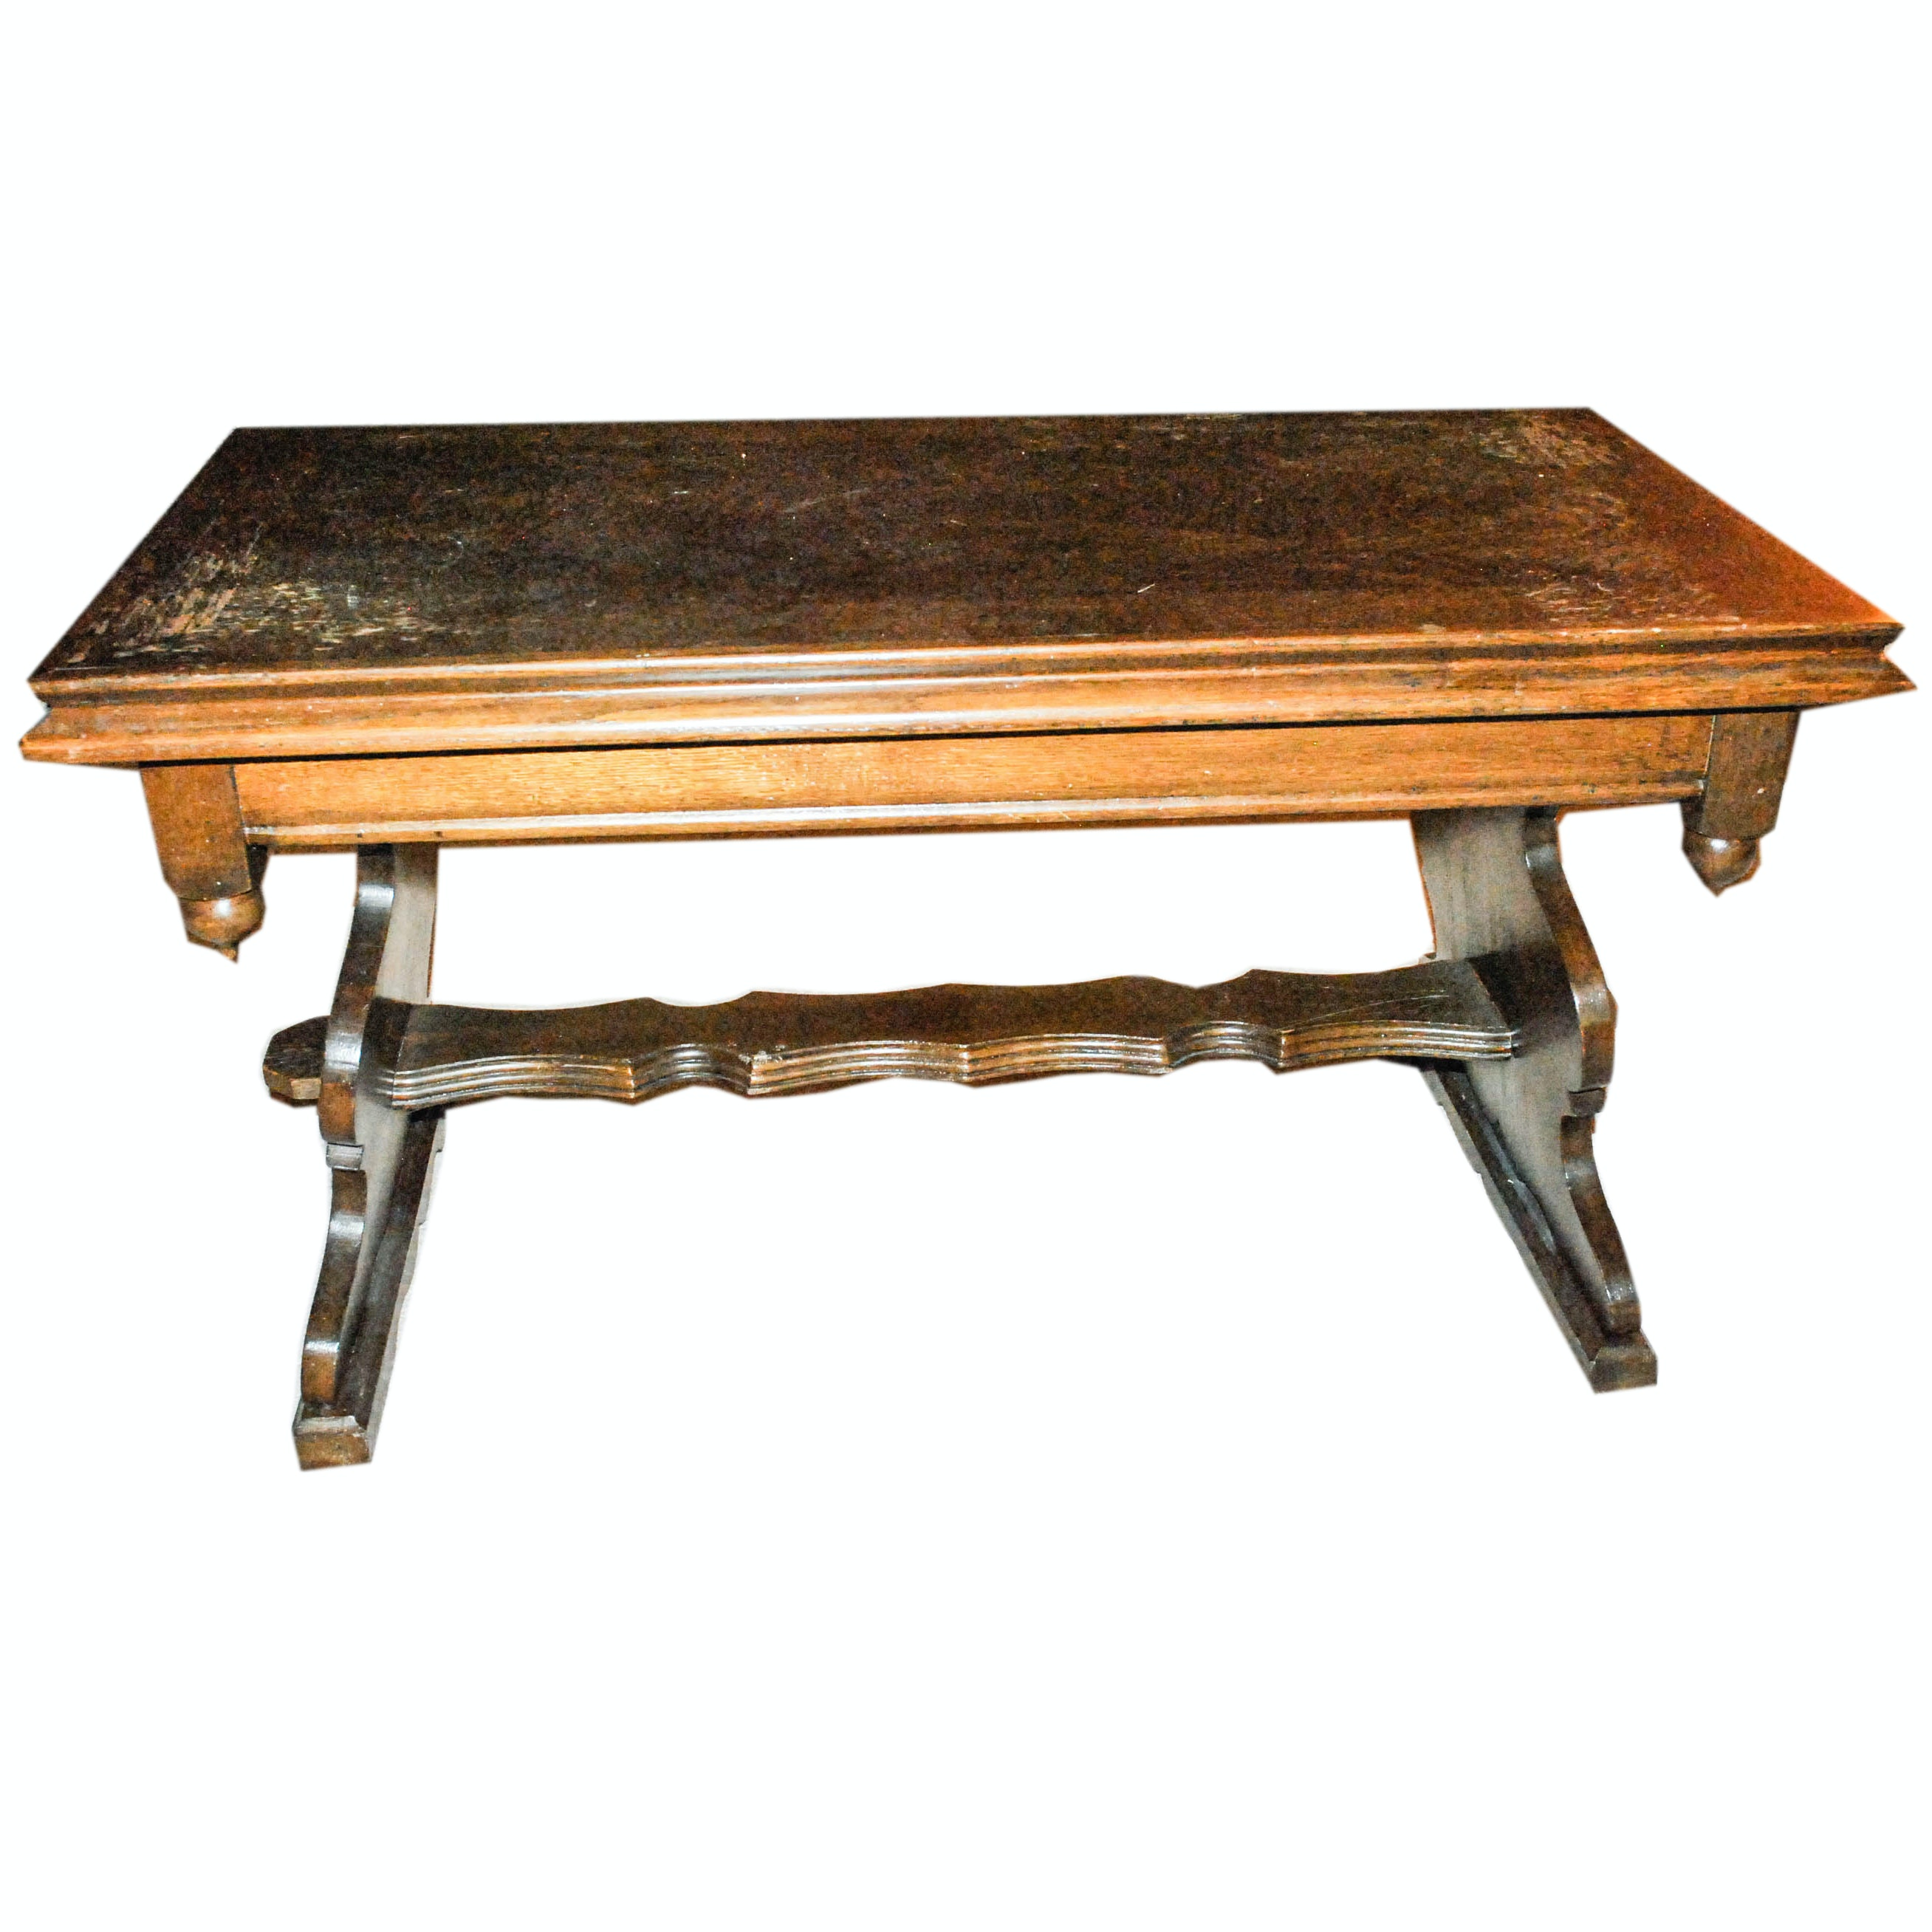 Dark Stained Oak Trestle Leg Coffee Table with Corner Drop Finials